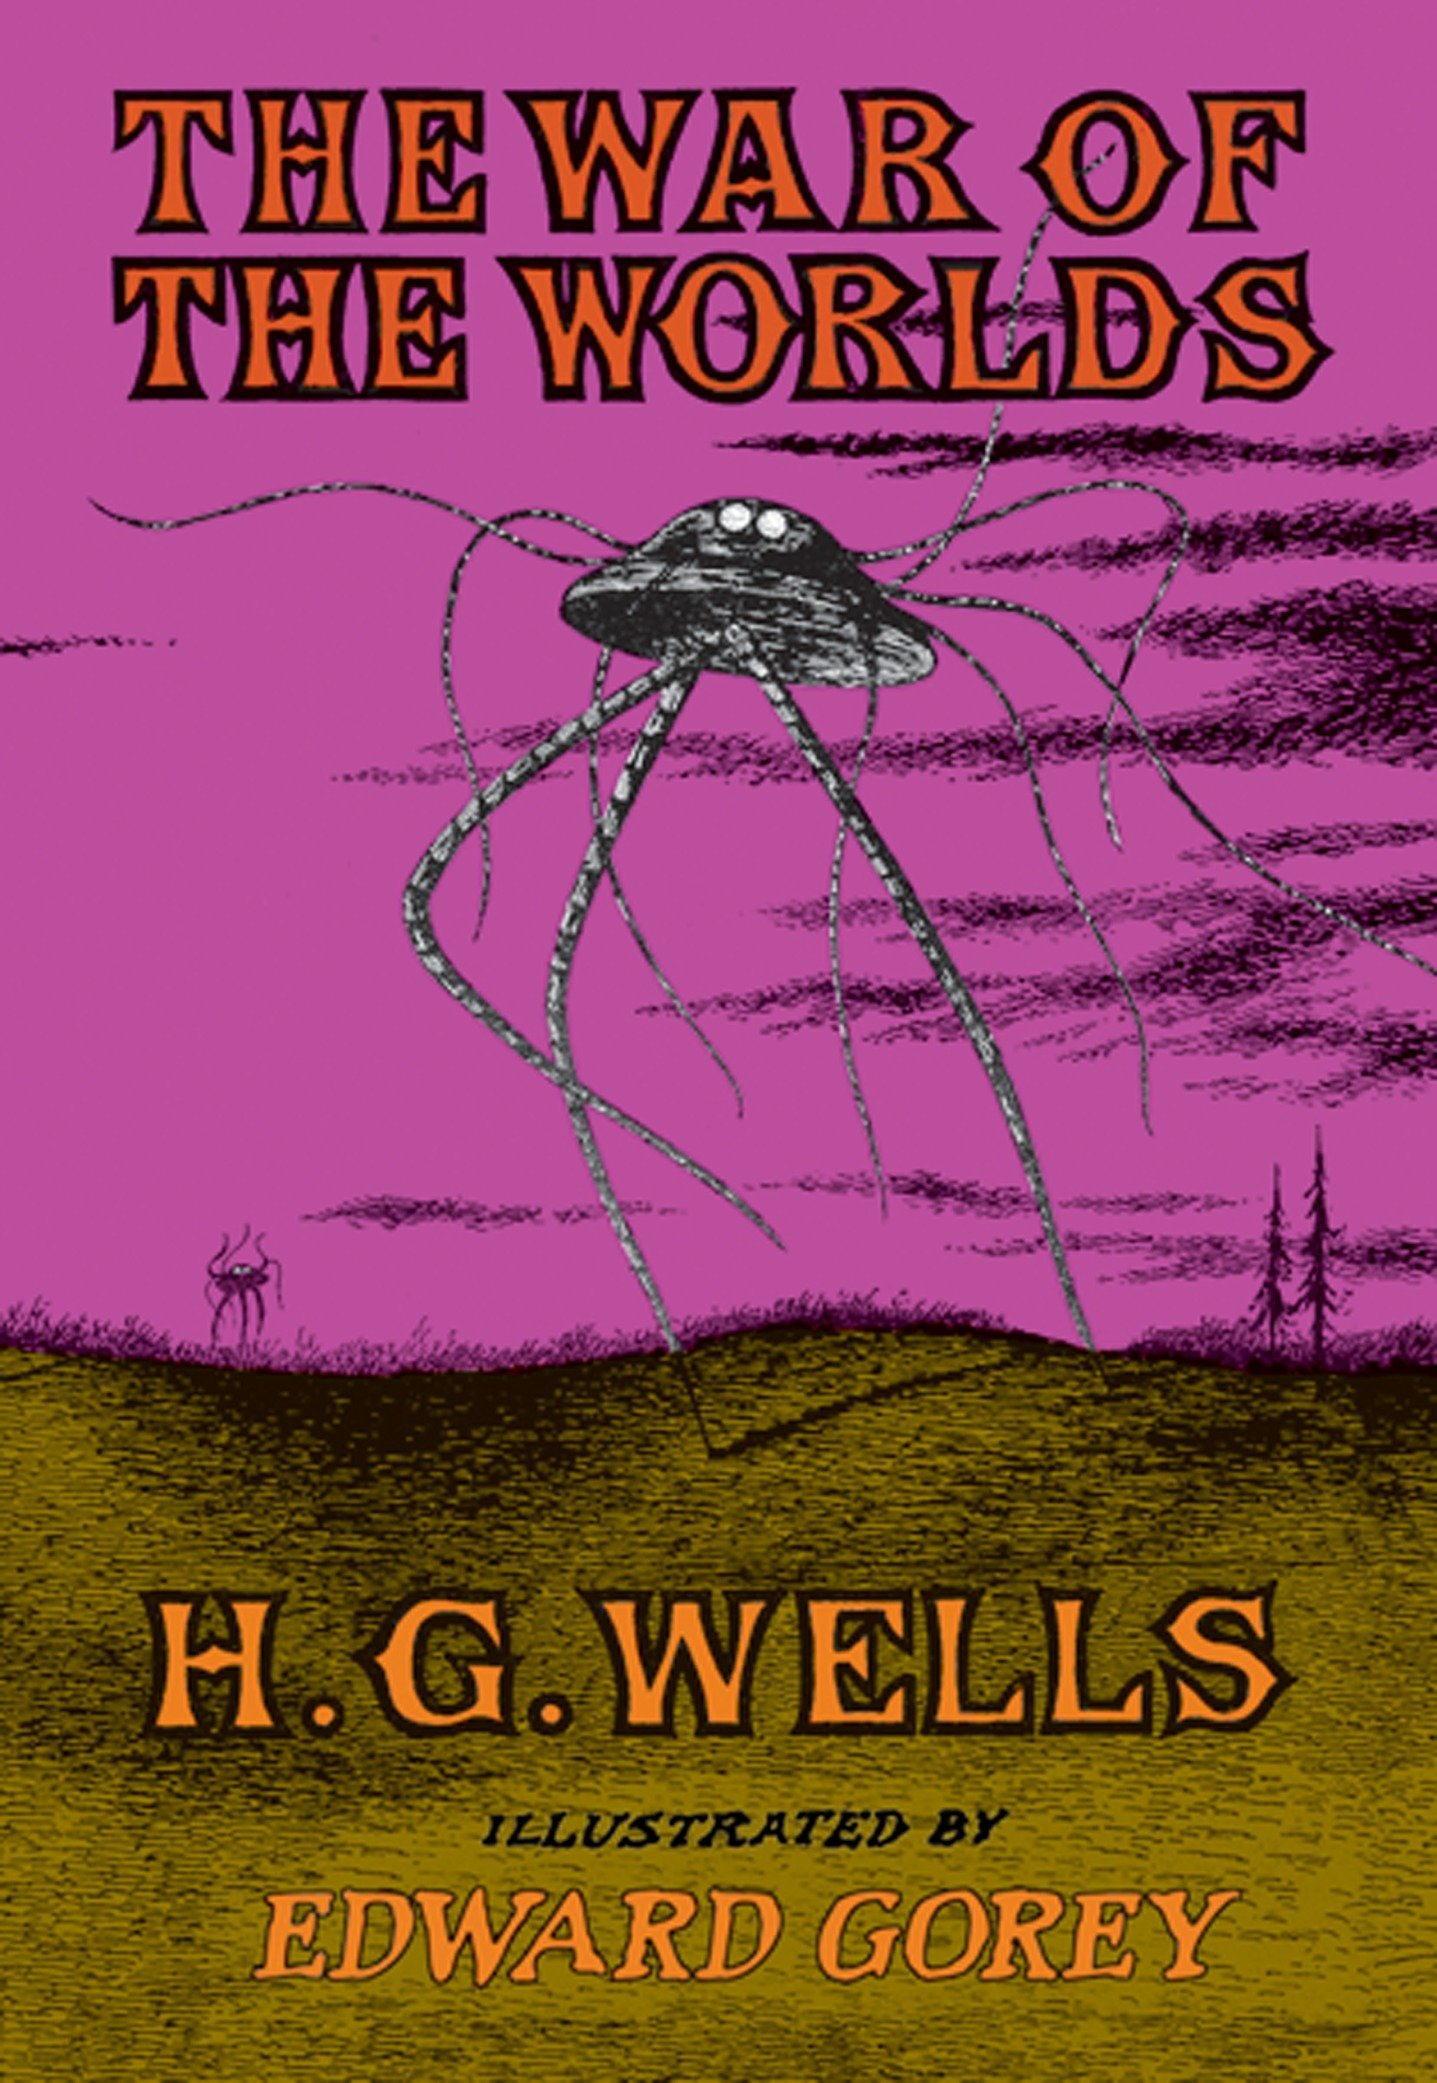 The War of the Worlds New York Review Books Classics: Amazon.es: Wells, H. G., Gorey, Edward: Libros en idiomas extranjeros